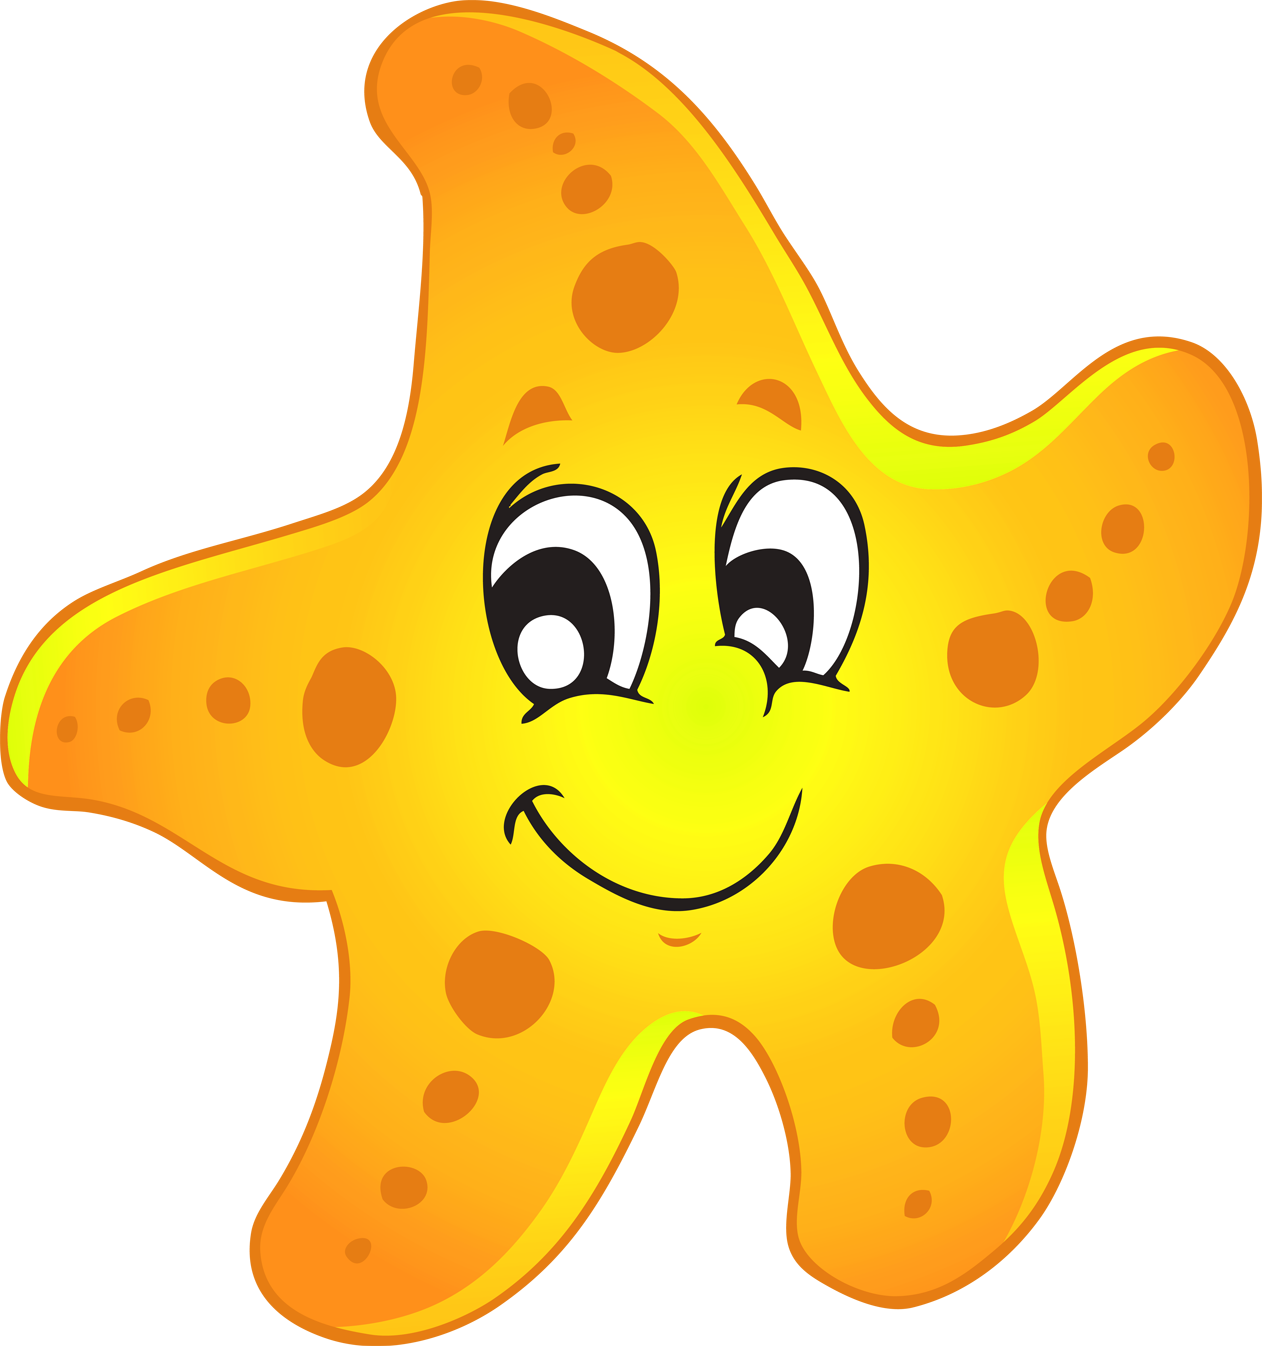 Sea Star Clipart - Cliparts.co